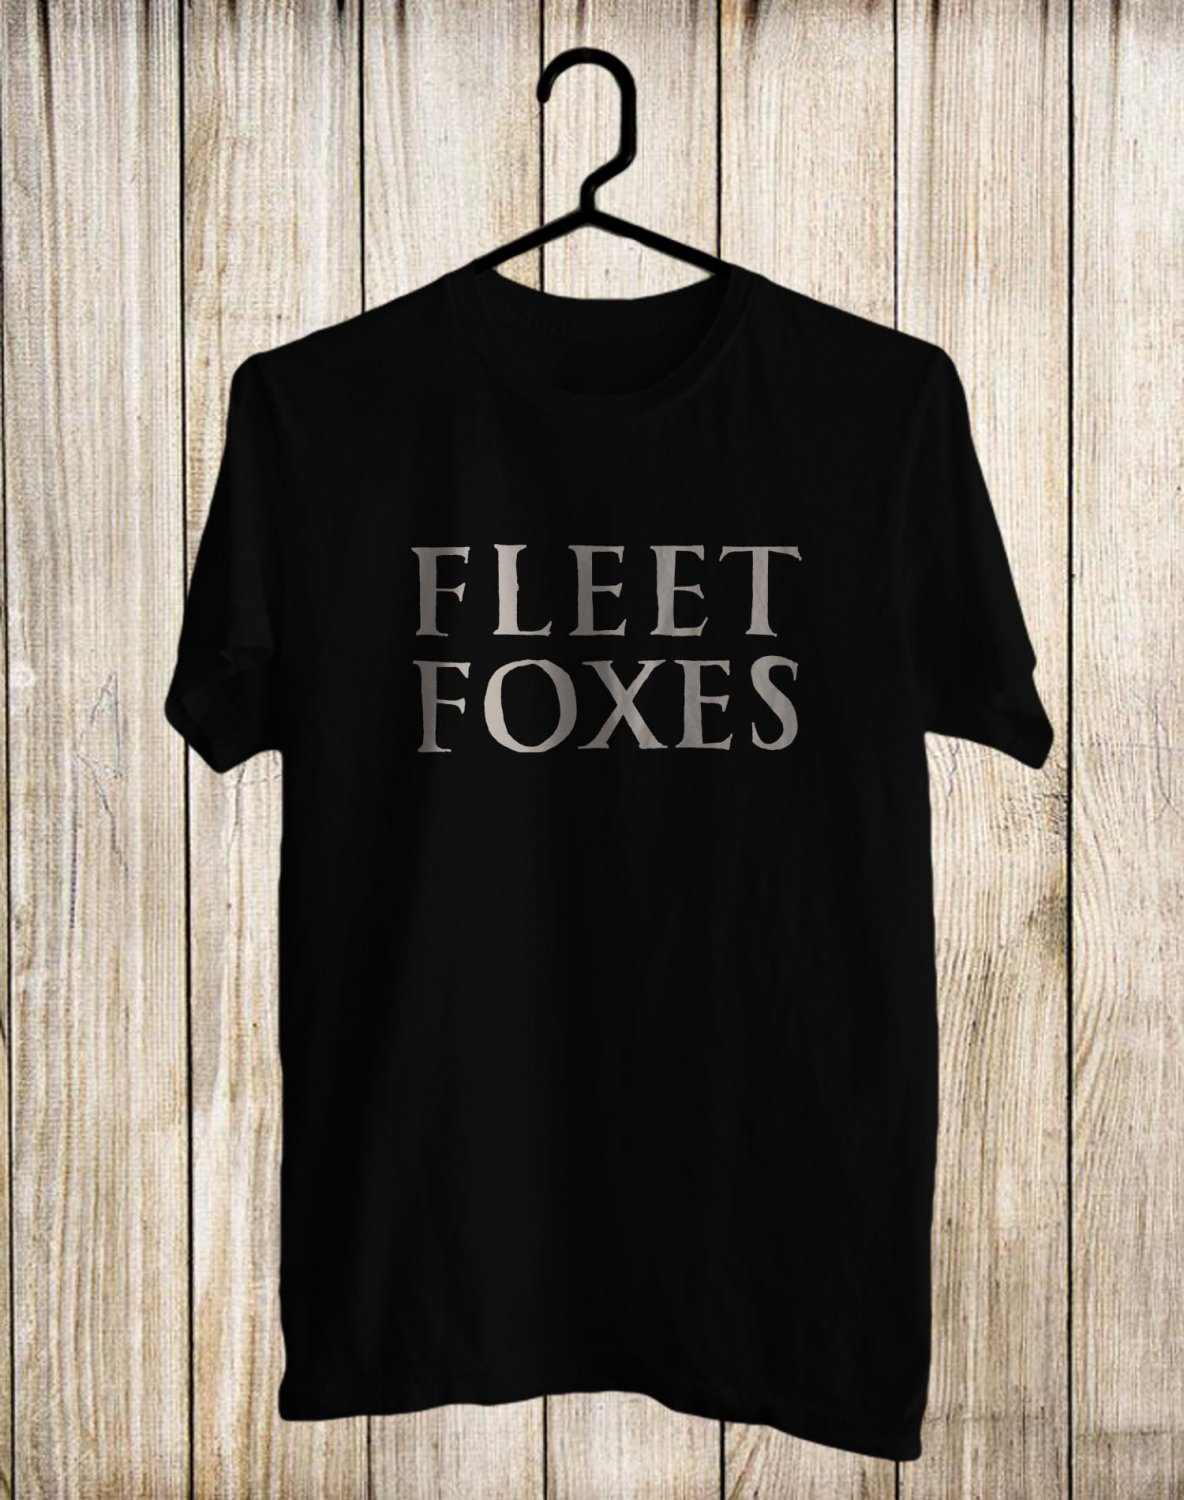 Fleet Foxes Logo for Tour 2017 Black Tee's Front Side by Complexart